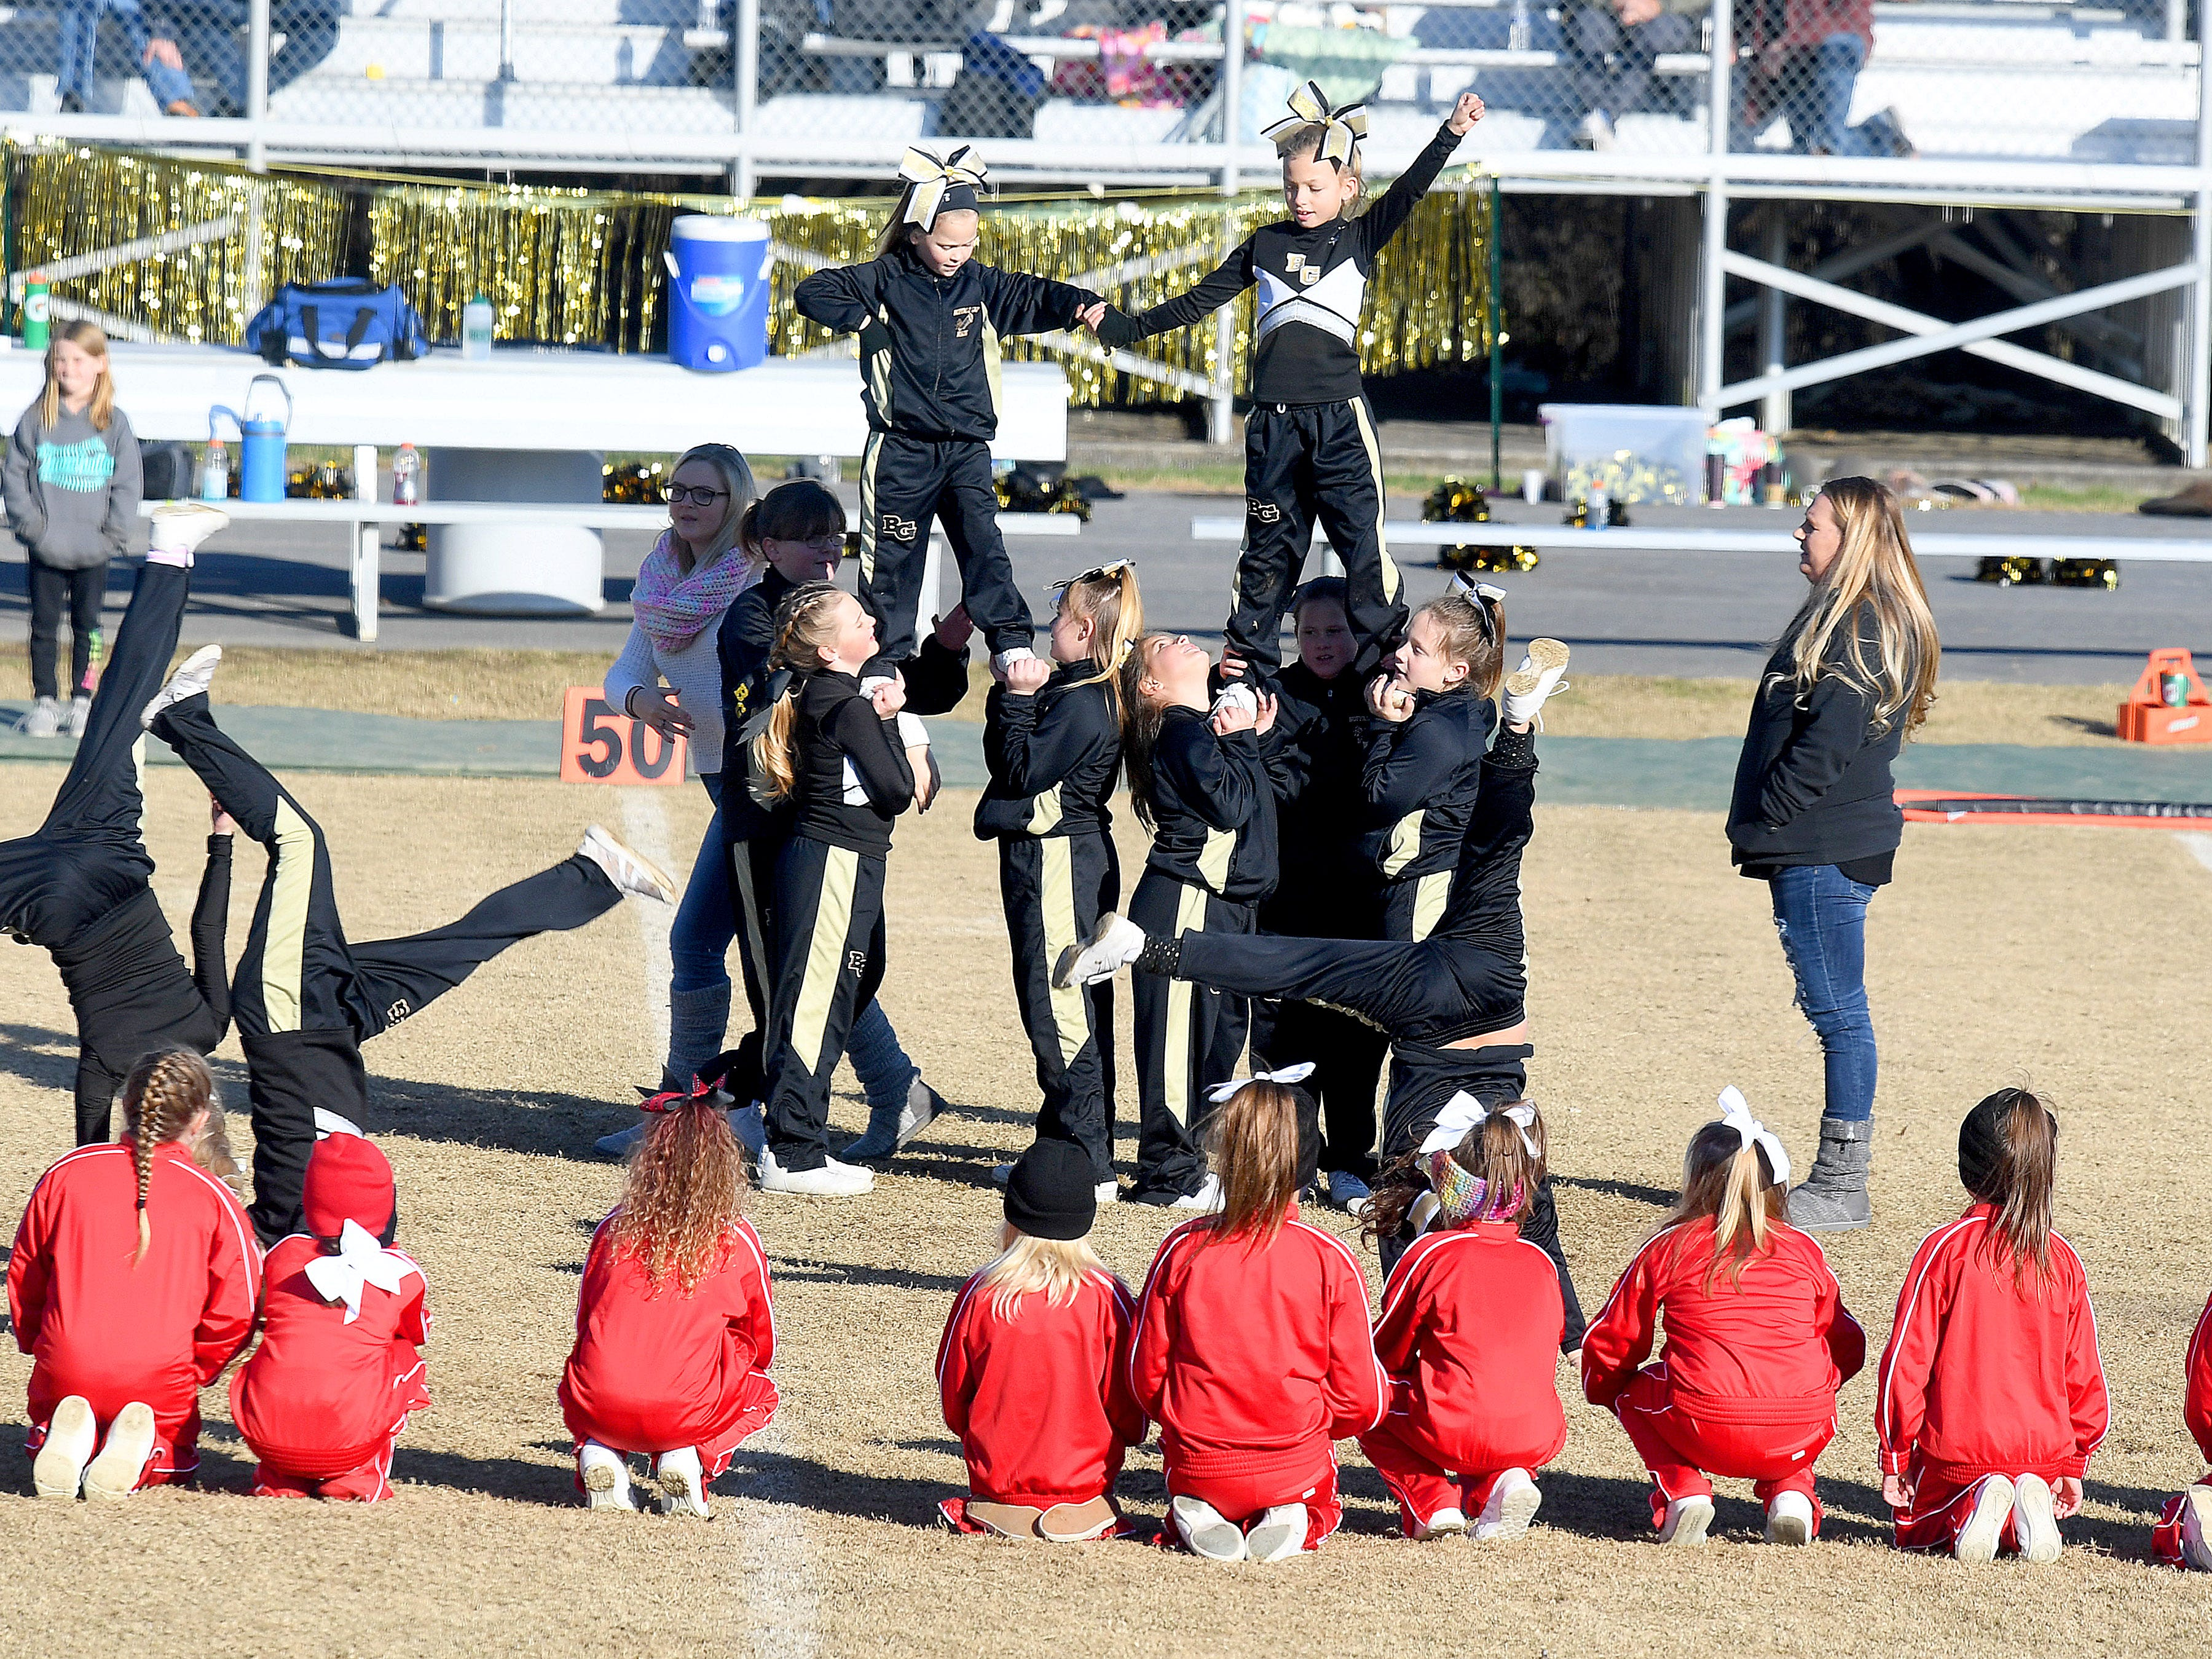 Buffalo Gap cheerleaders face-off against Riverheads cheerleaders during halftime of the Augusta County Quarterback Club Midget Super Bowl in Fishersville on Sunday, Nov. 11, 2018. Riverheads beat Buffalo Gap, 25-6.